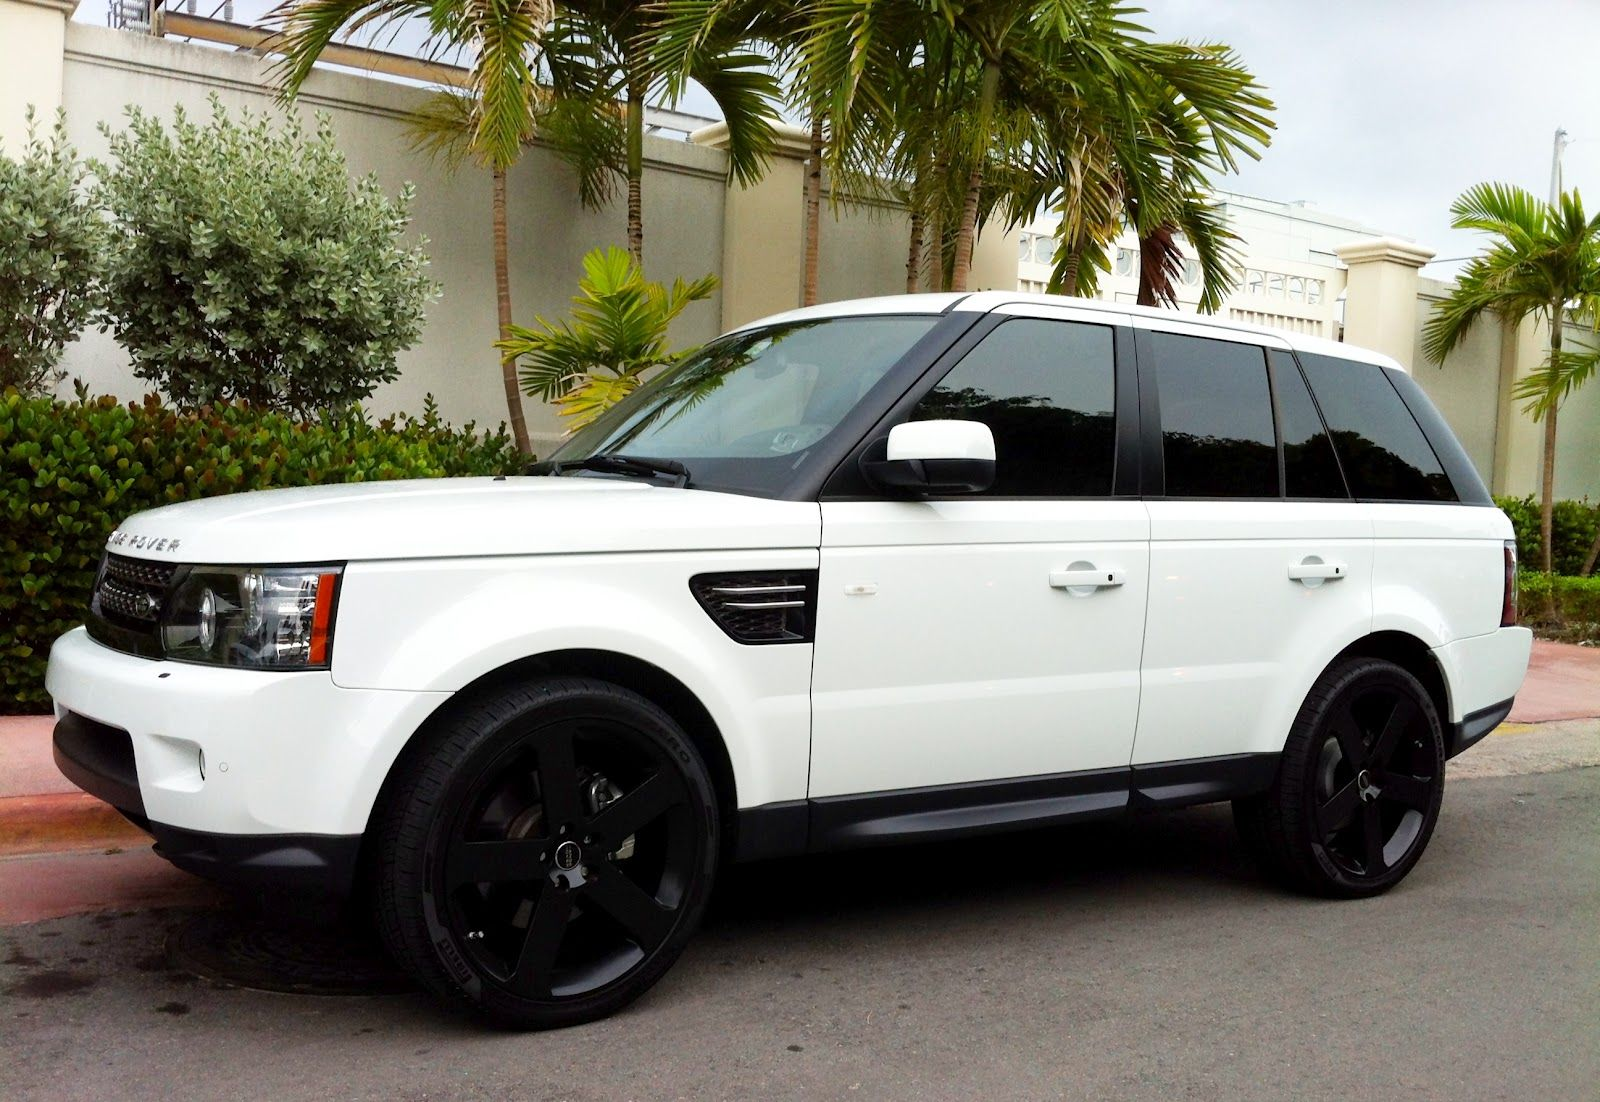 pin by walls auto on cool car wallpapers range rover. Black Bedroom Furniture Sets. Home Design Ideas